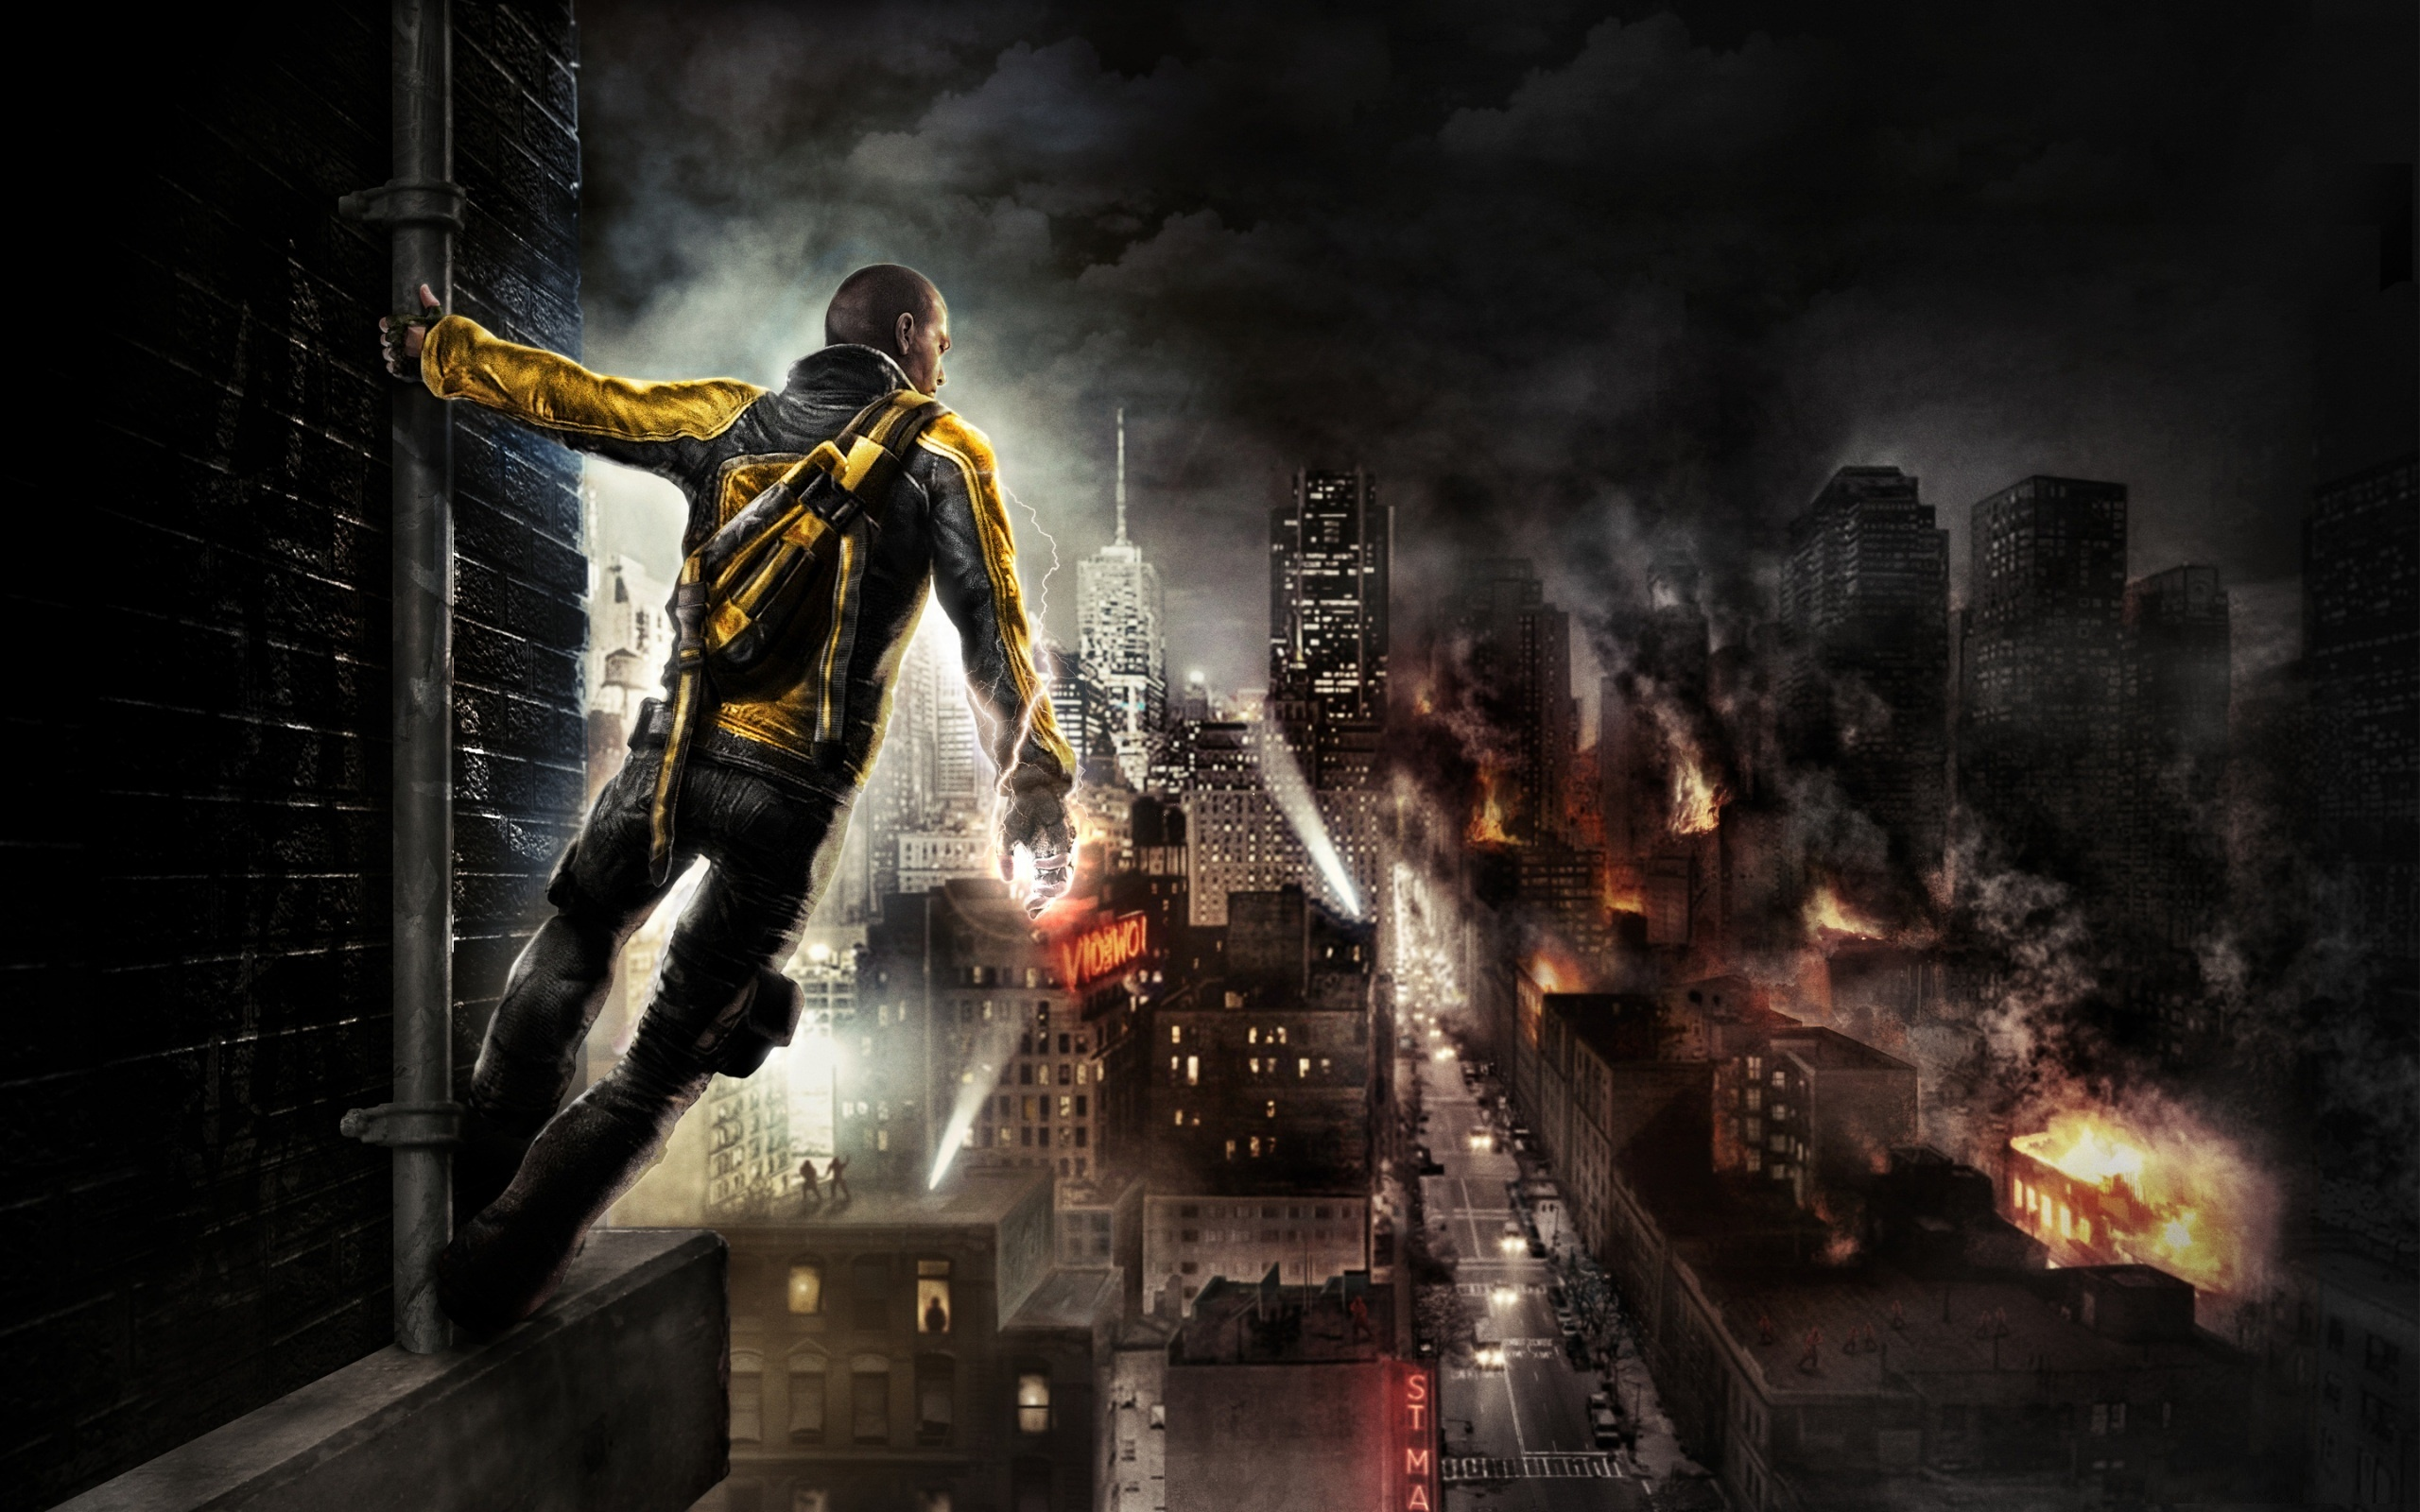 Infamous 2 Adventure Video Game Wallpapers